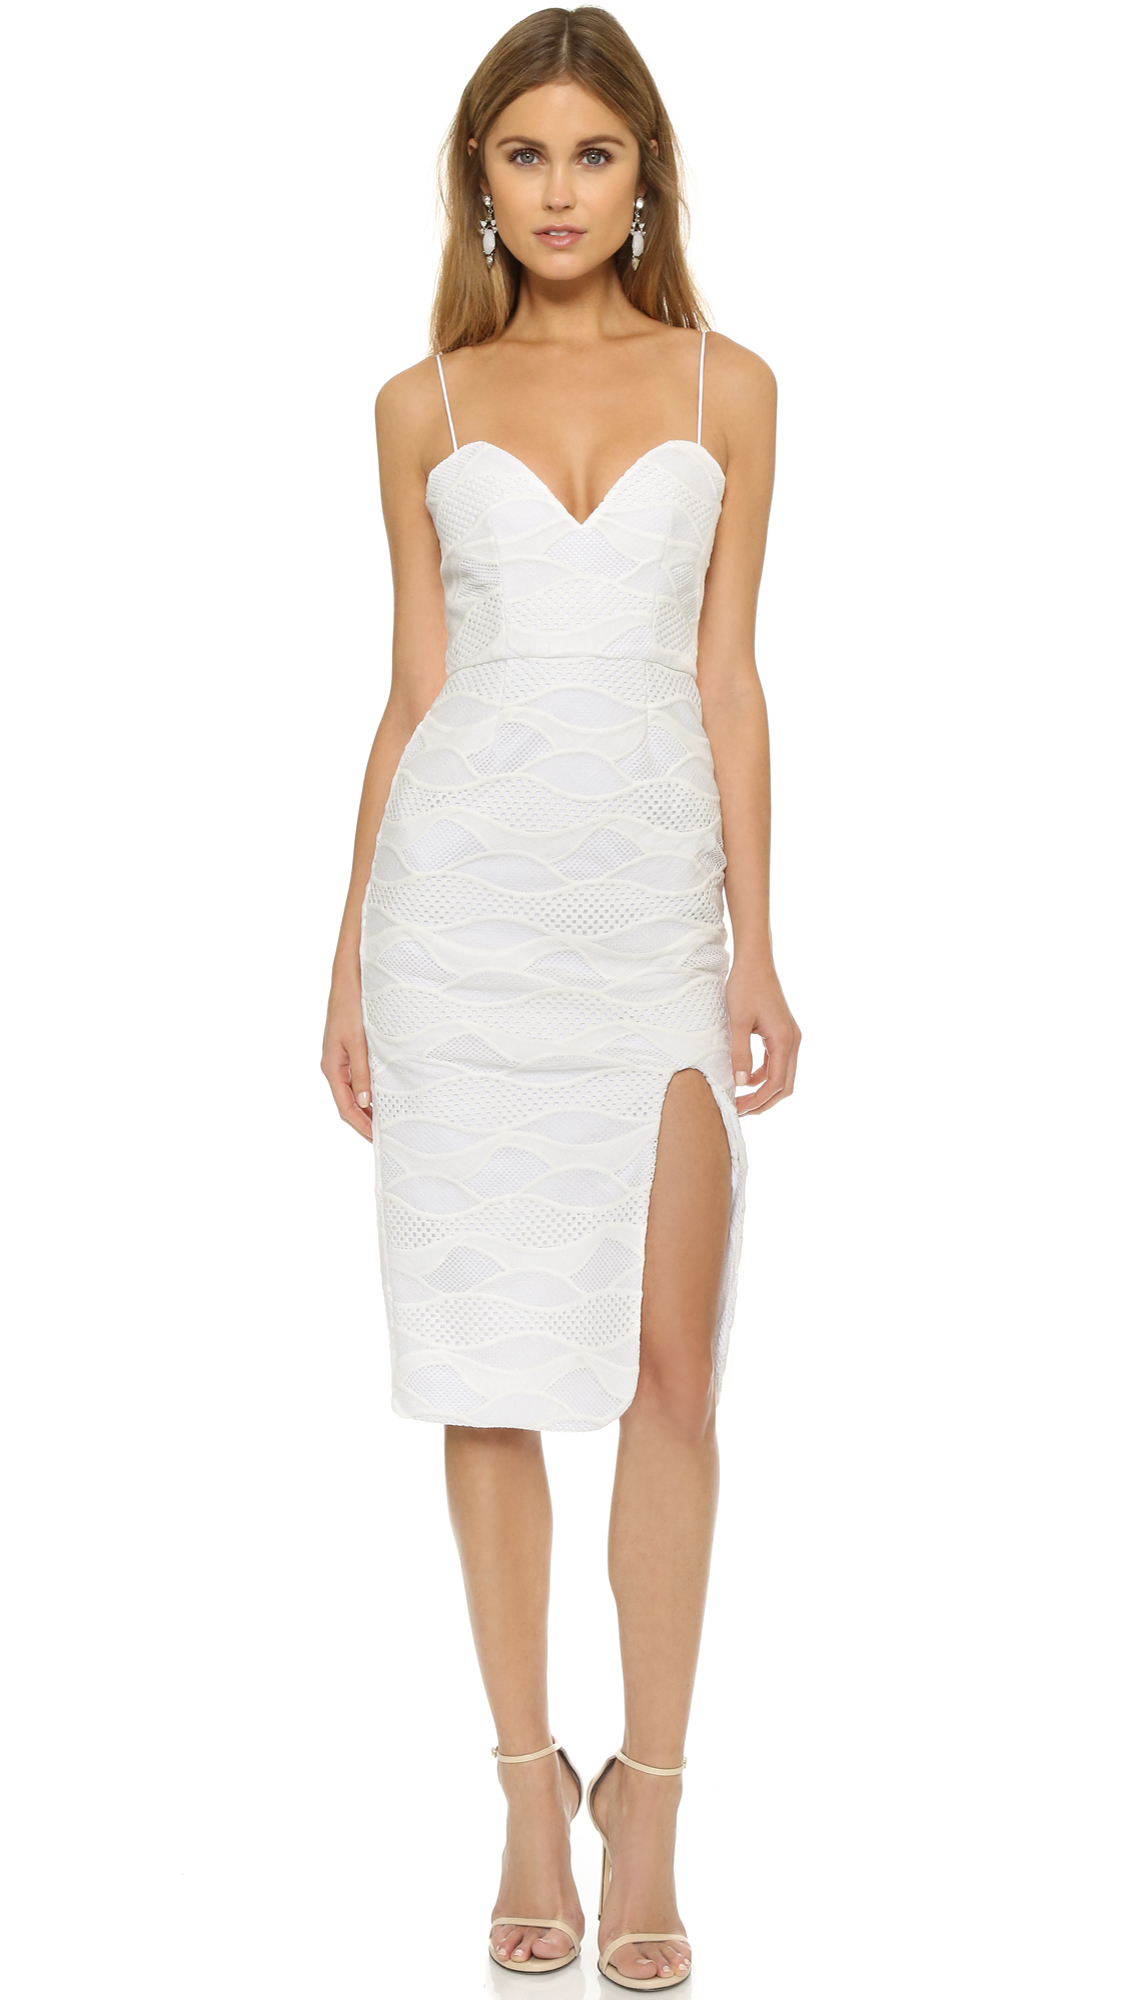 Nicholas Wave Lace Sweetheart Dress in White - Lyst